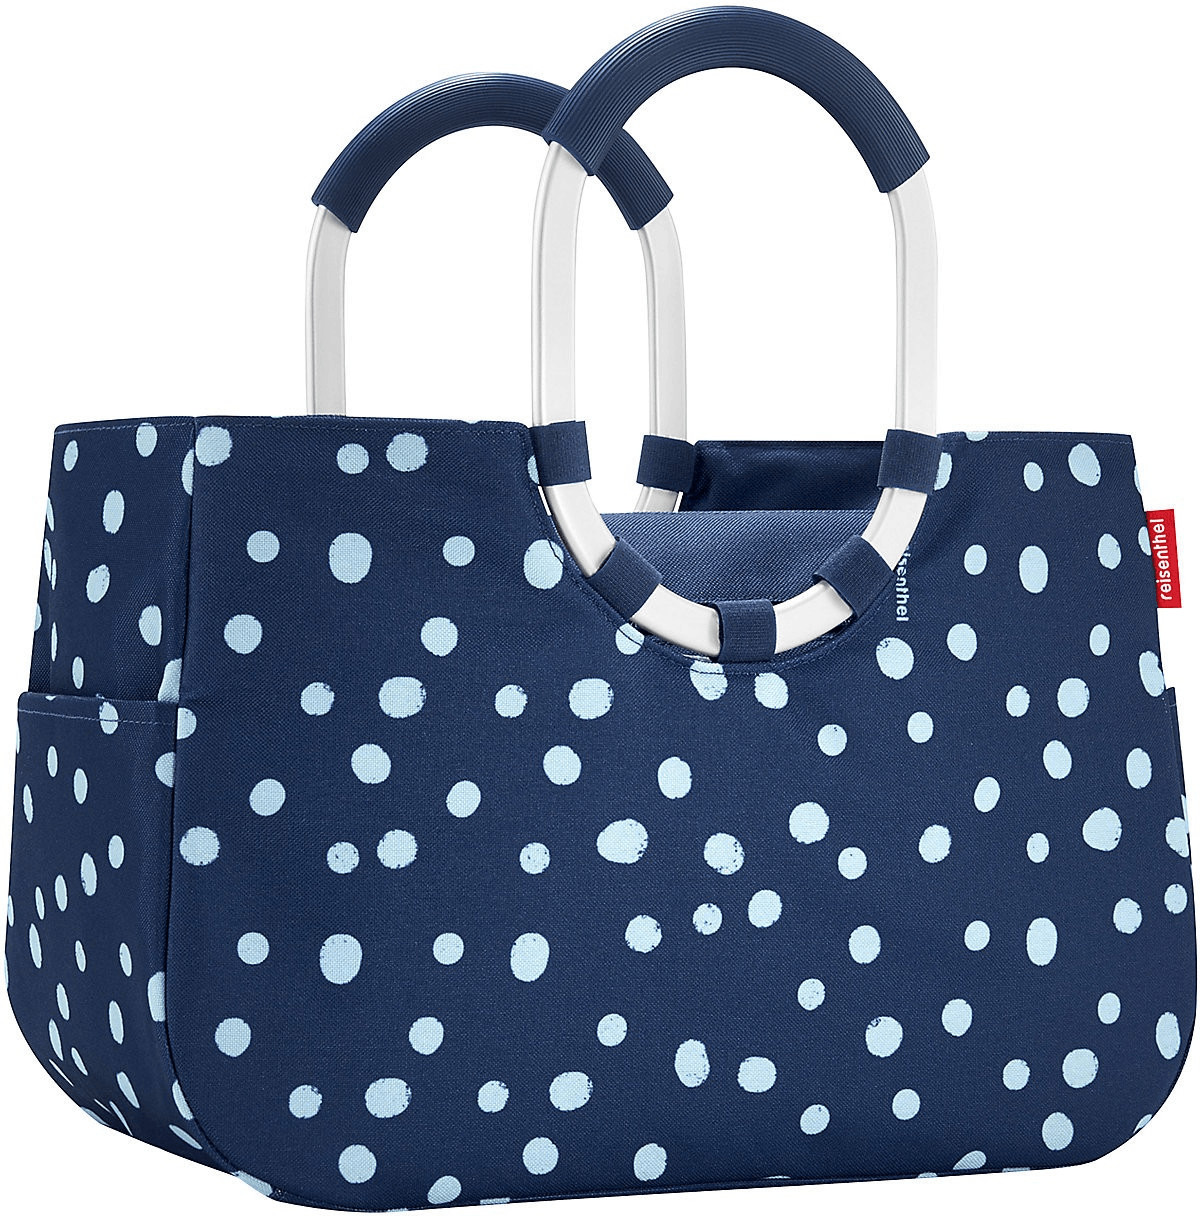 Reisenthel Loopshopper M spots navy